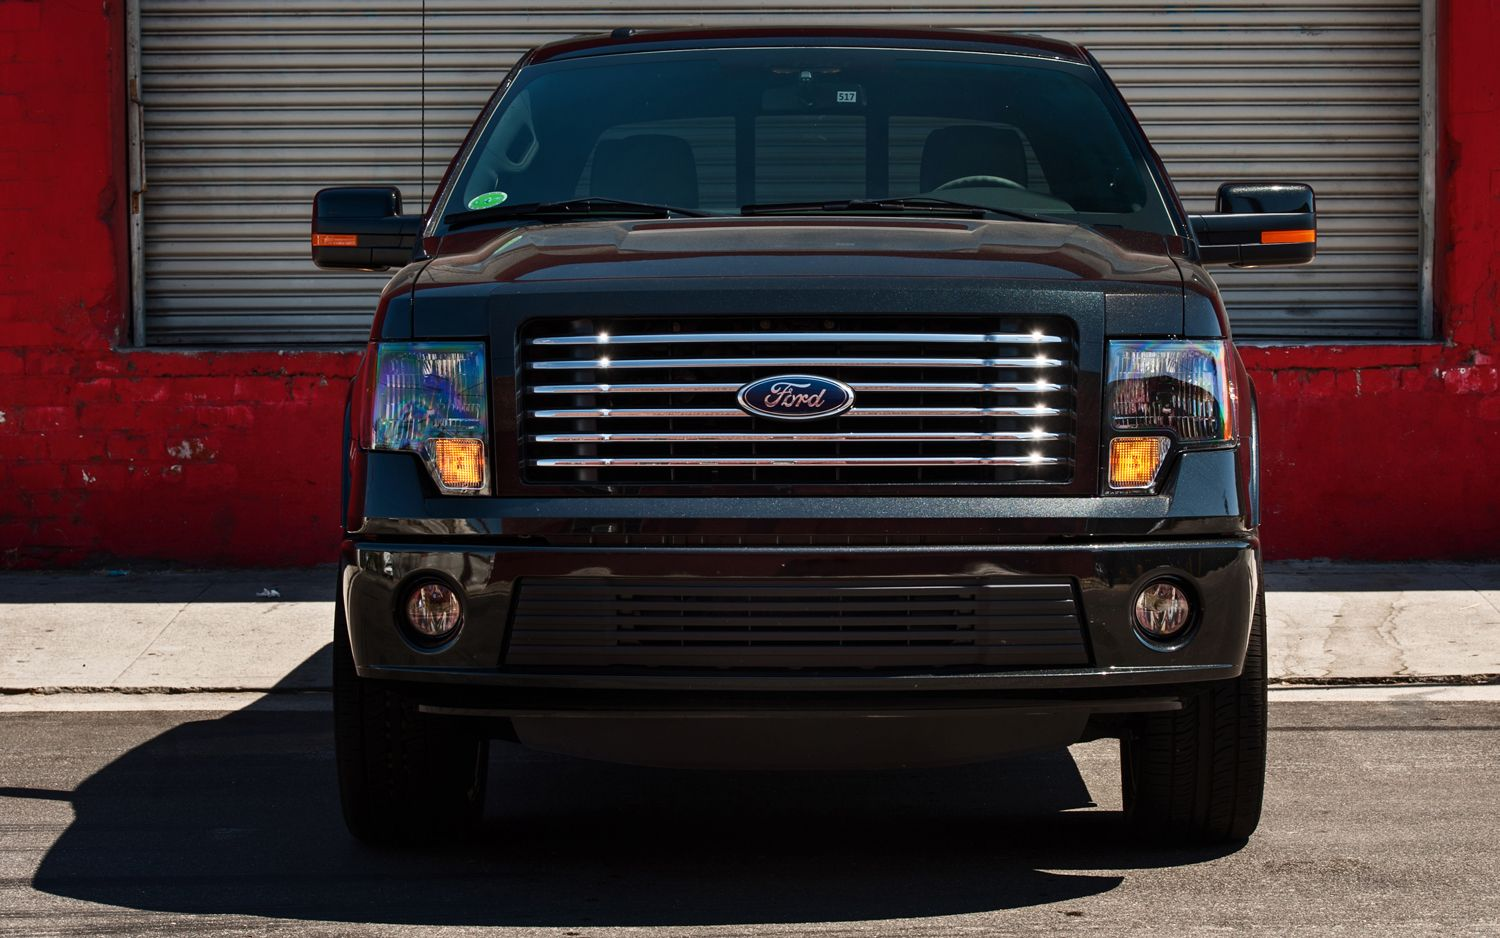 2012 Ford F 150 Supercrew Harley Davidson Edition Front Grill